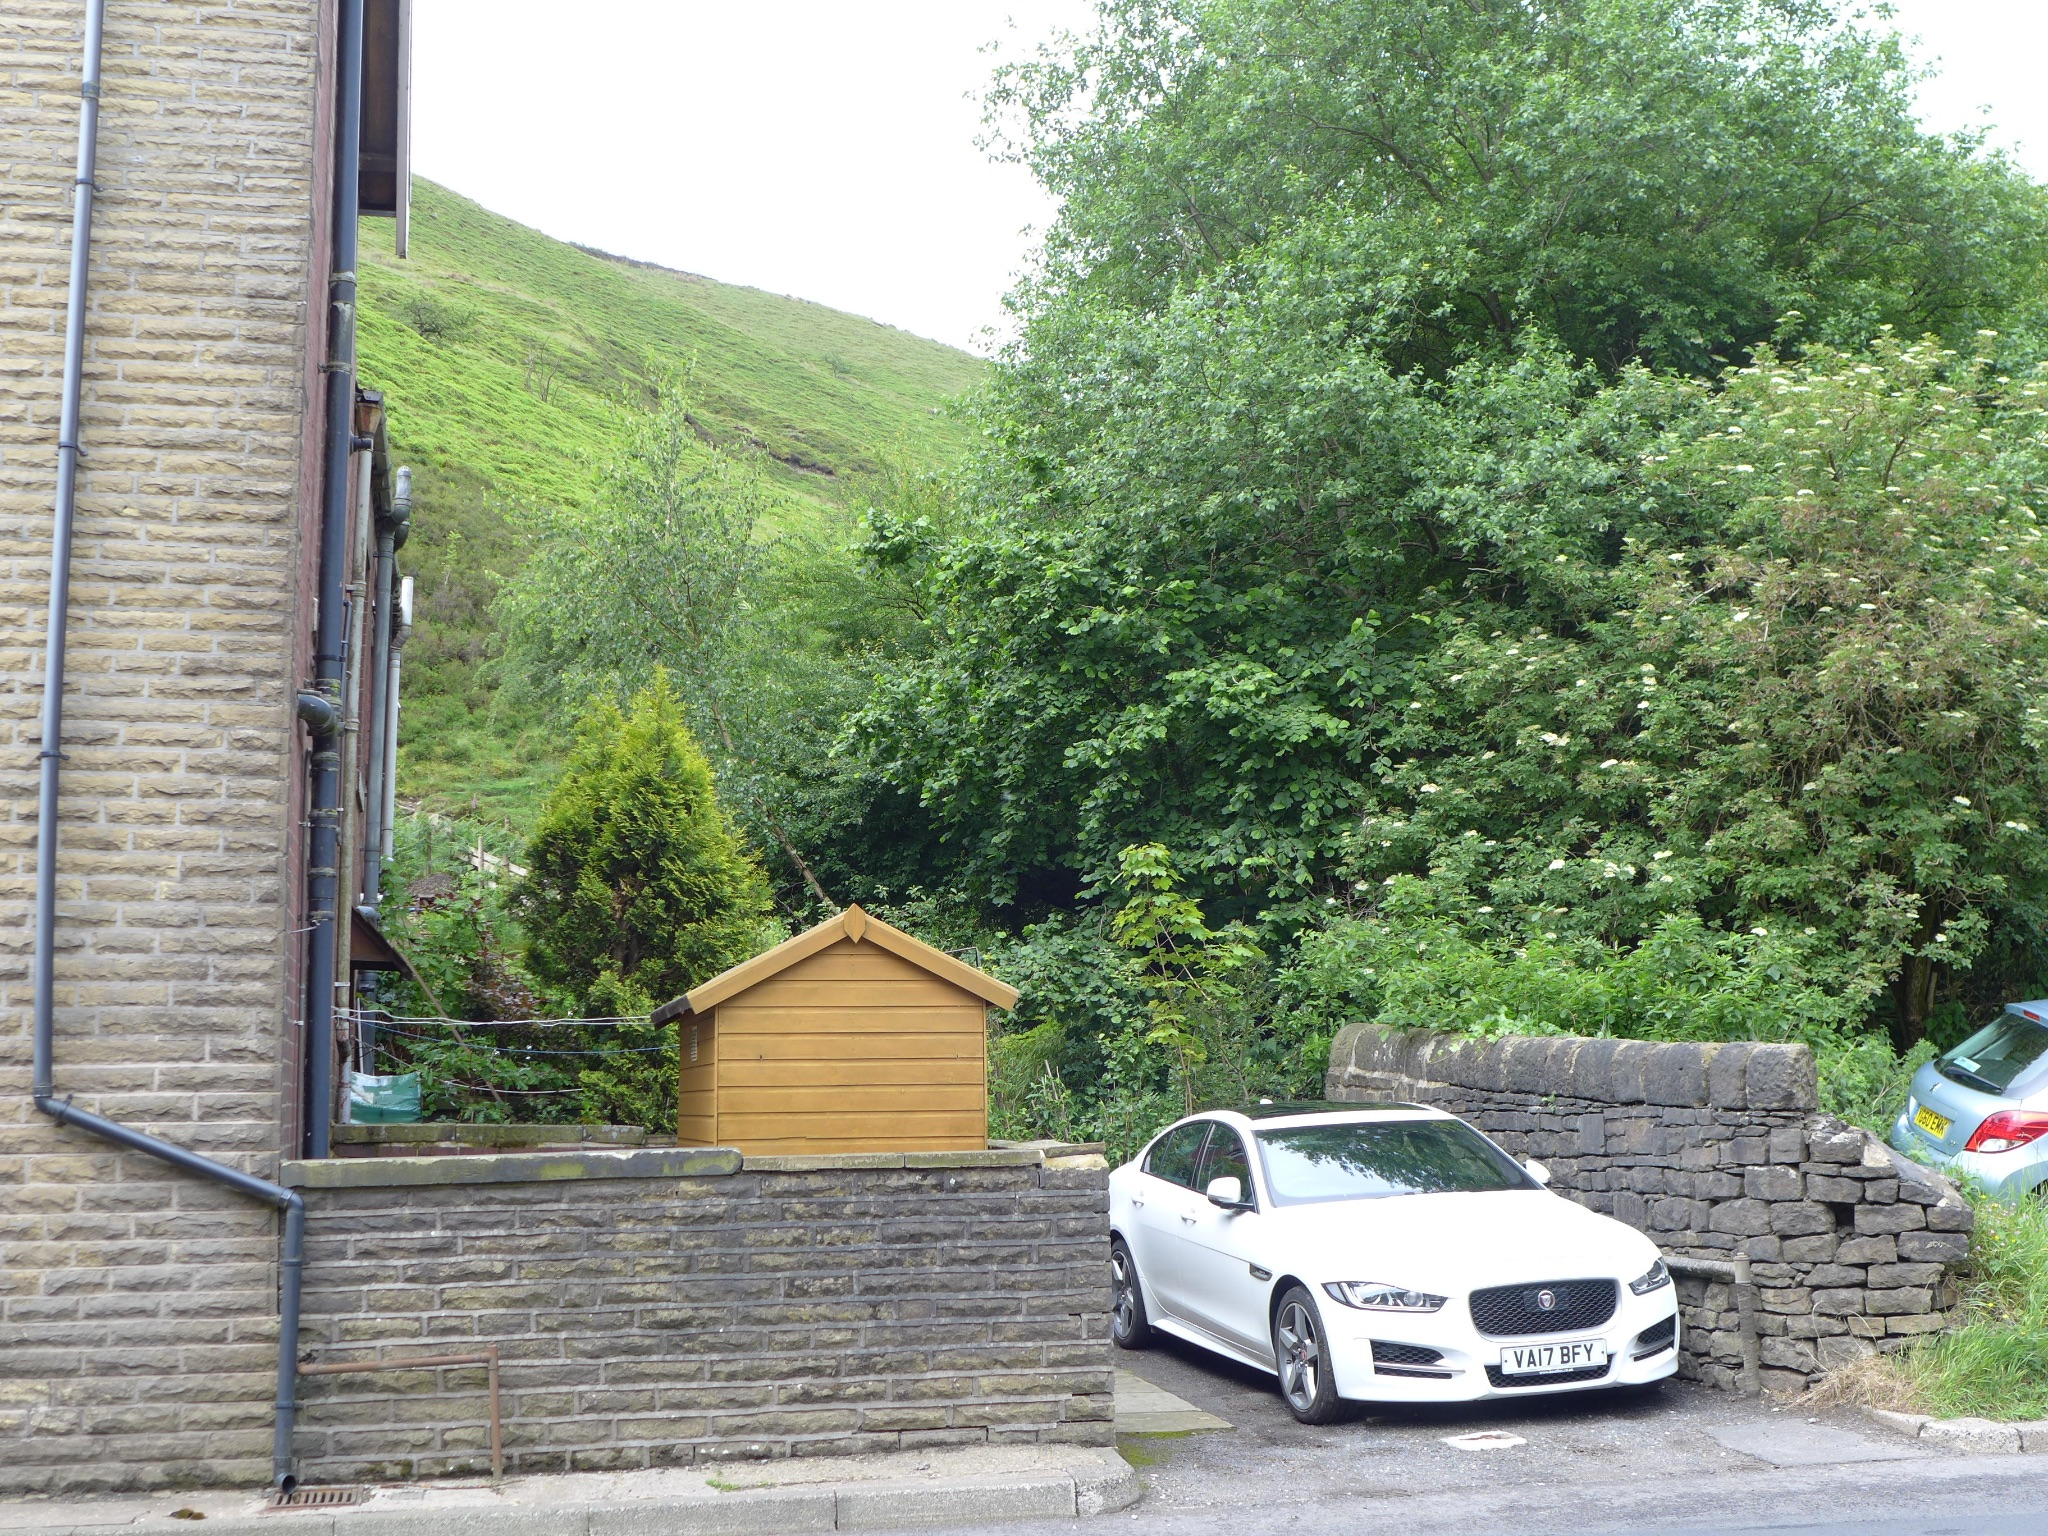 3 bedroom end terraced house For Sale in Todmorden - Photograph 18.